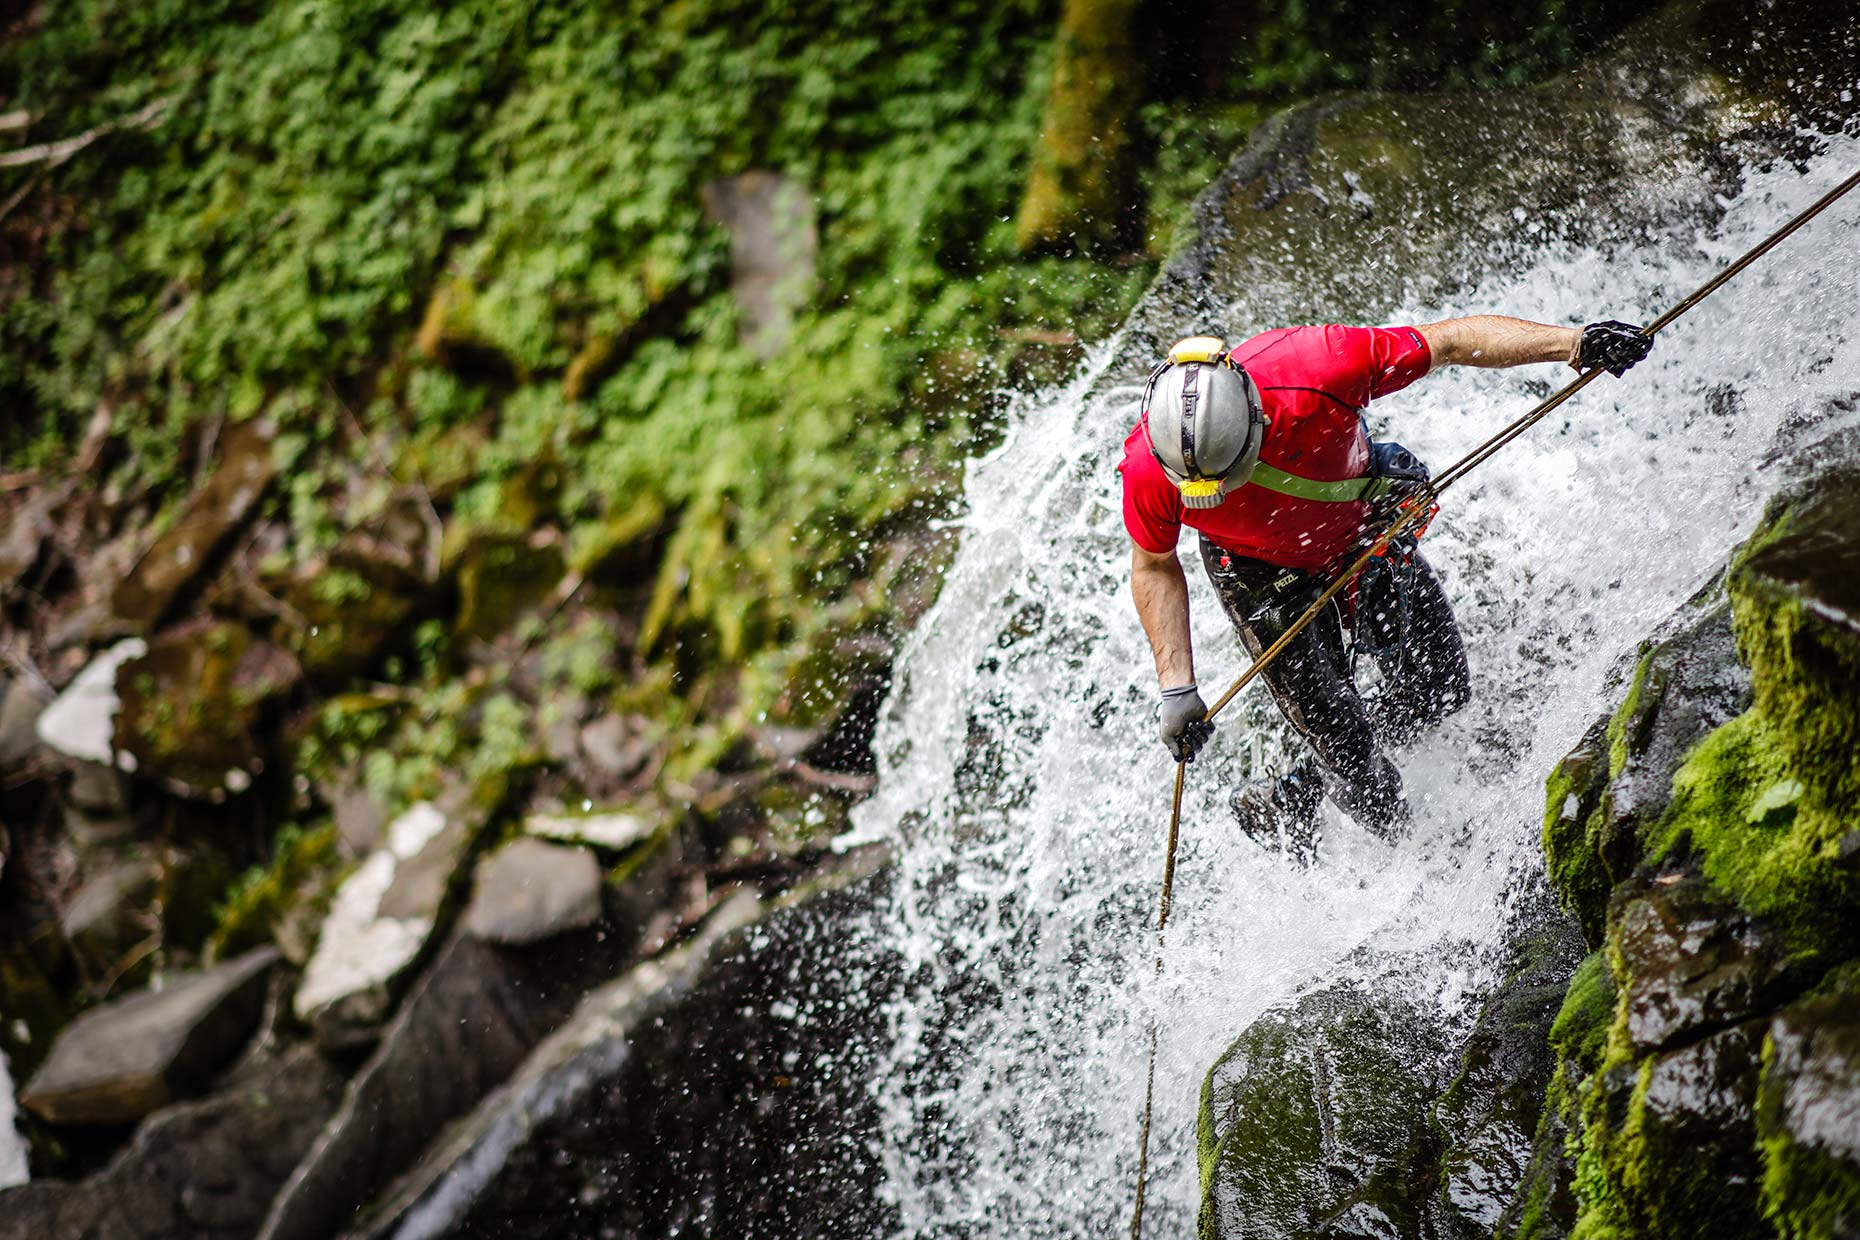 A canyoneer rappels down a powerful raging waterfall in the Catskills New York